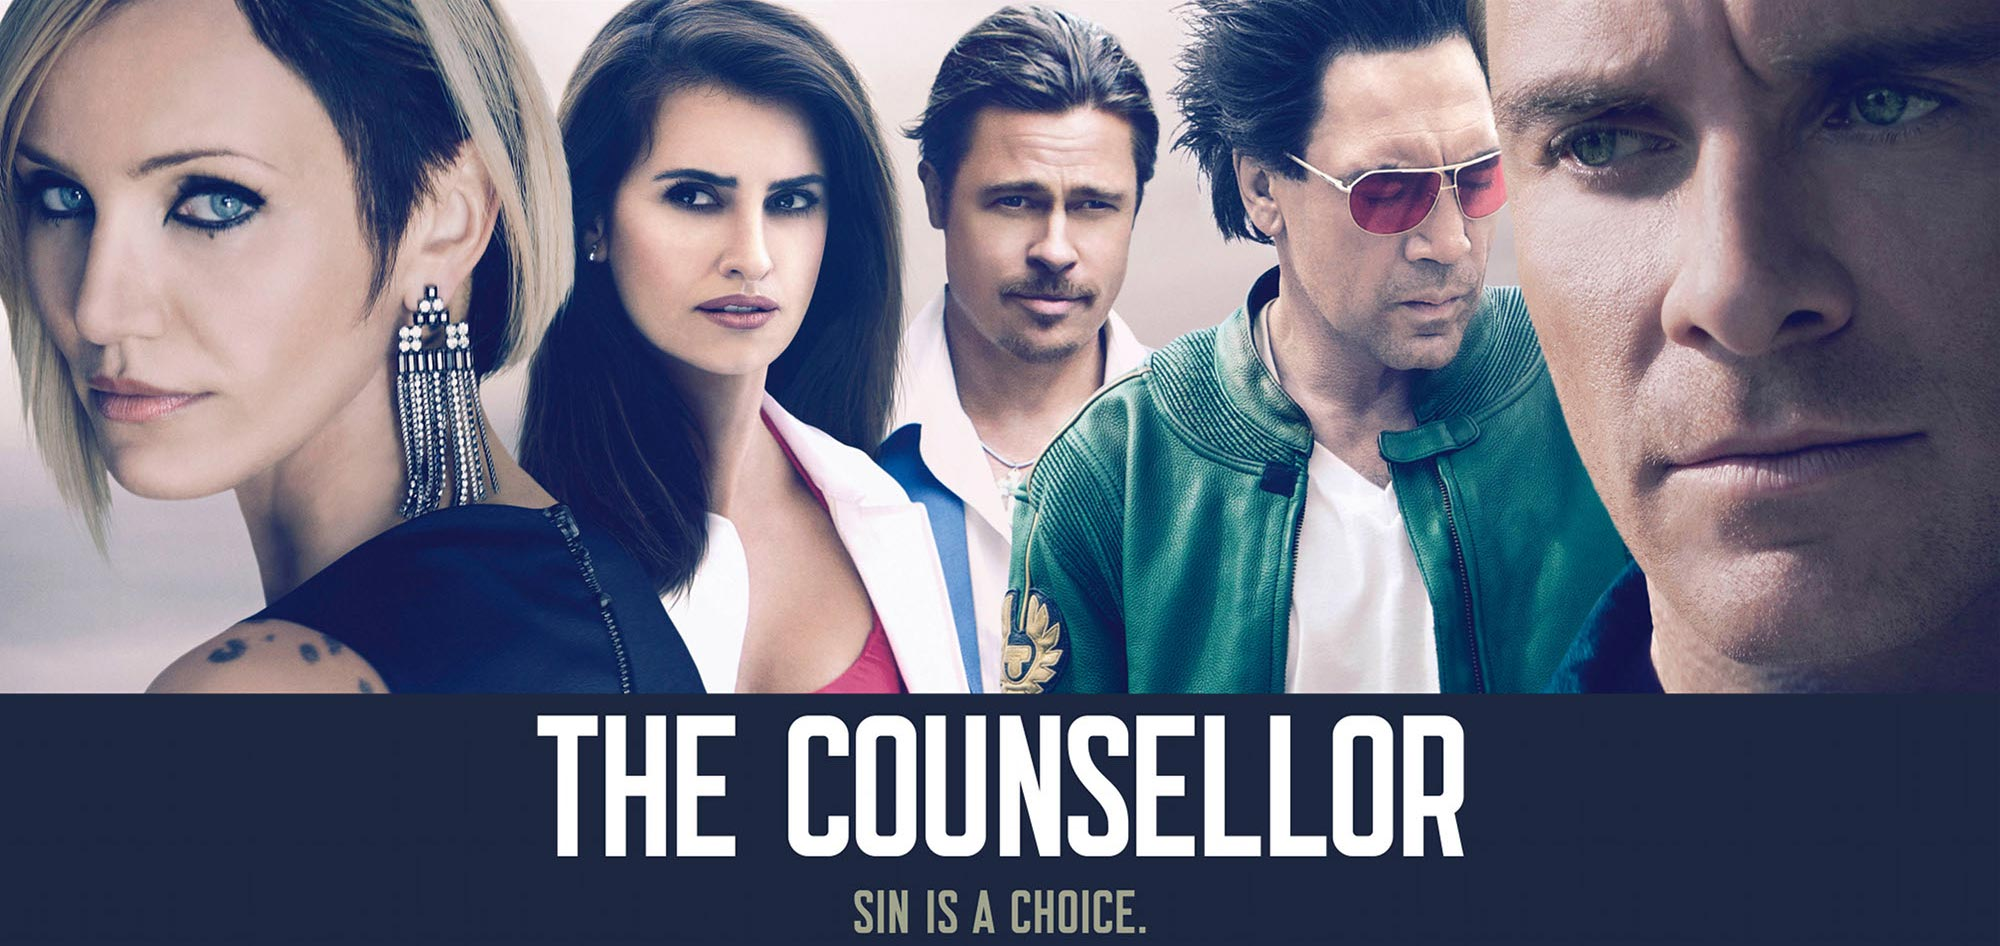 http://moviepronews.com/wp-content/uploads/2013/09/The-Counselor.jpg